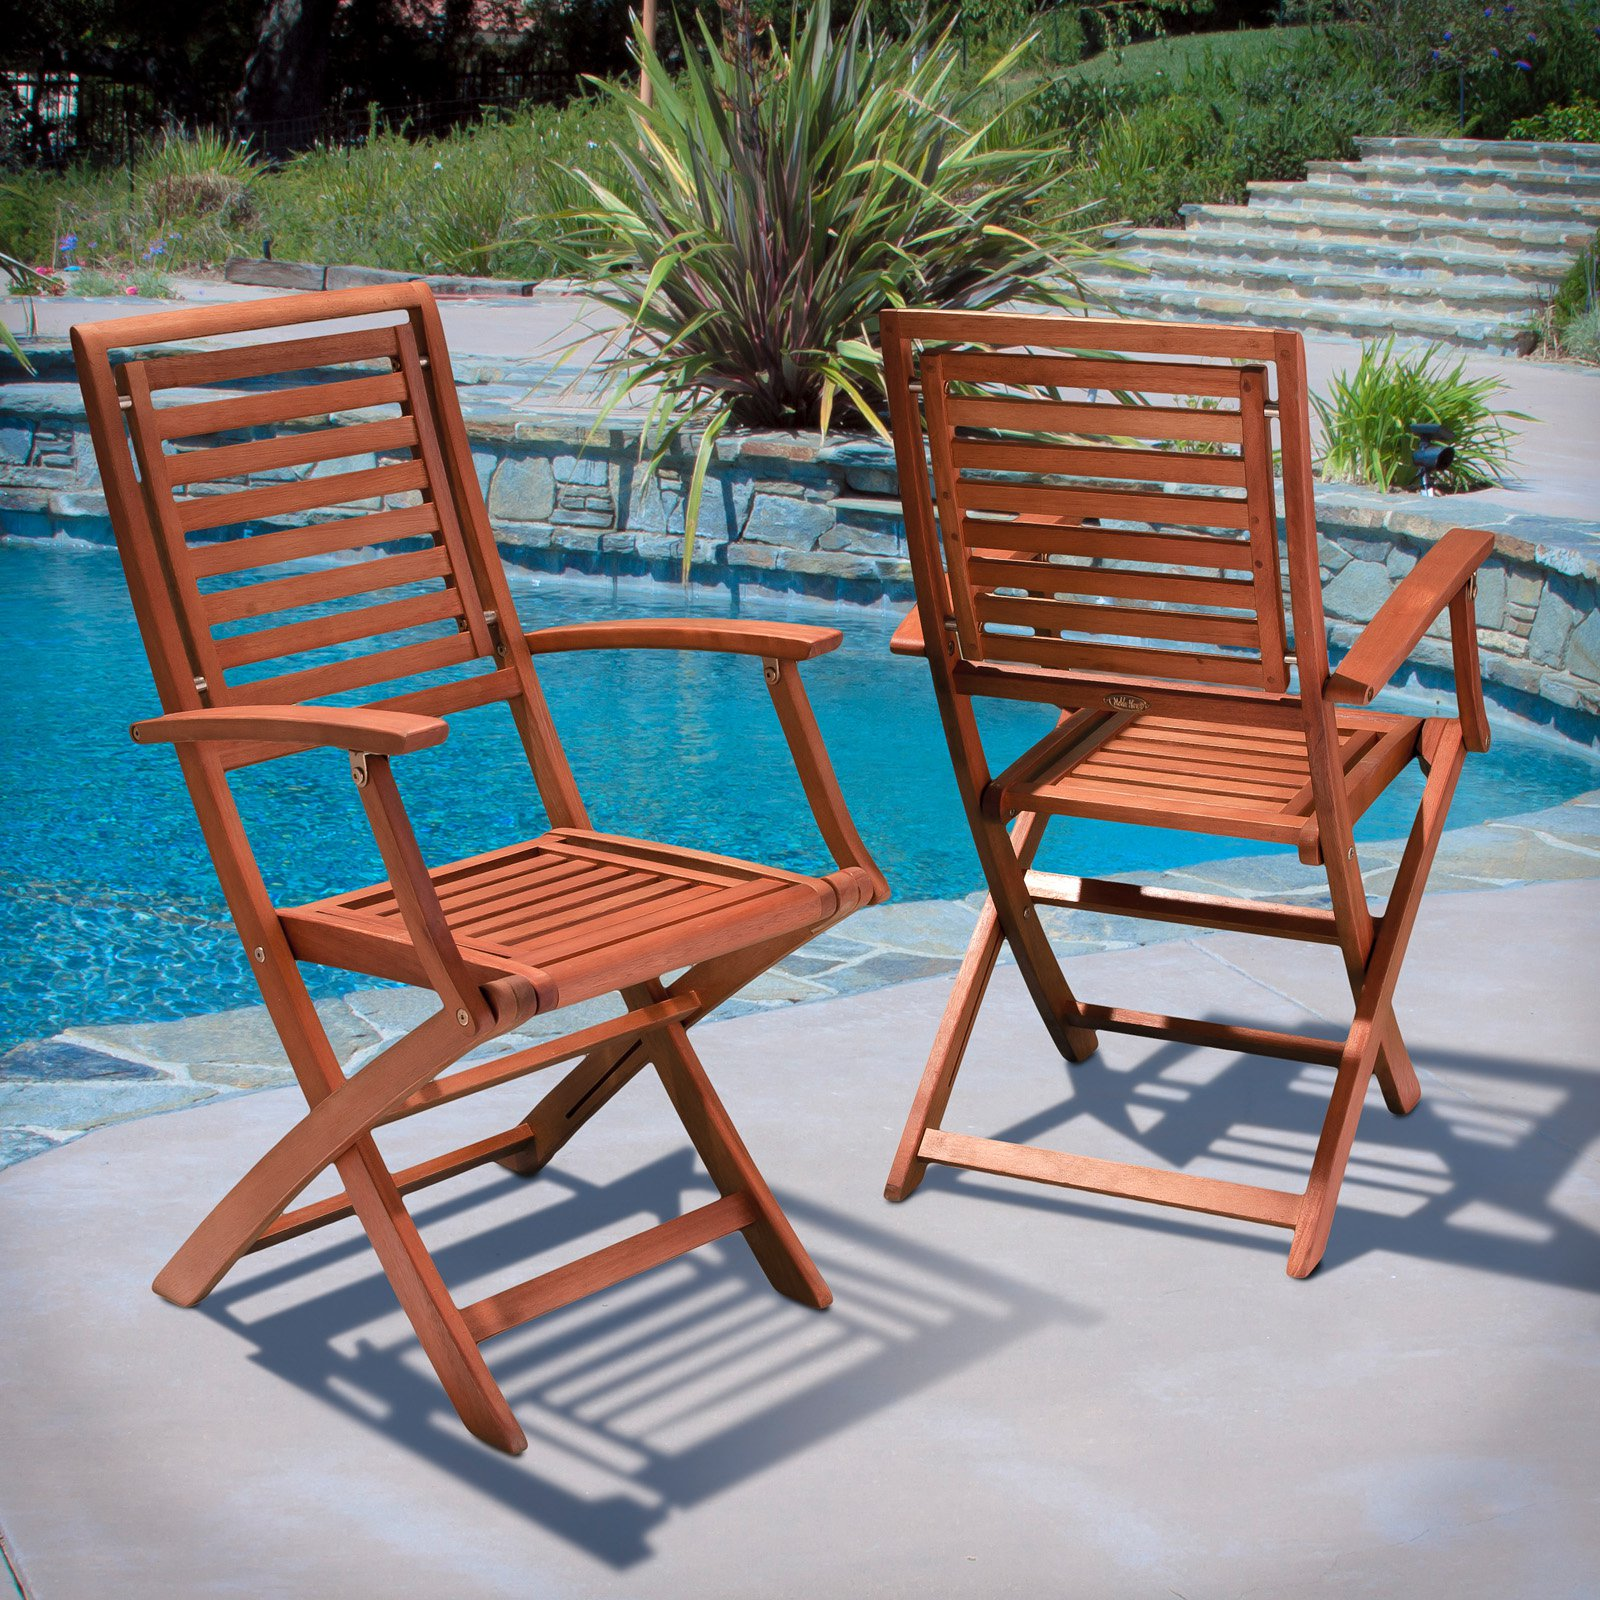 Americana Hard Wood Outdoor Folding Dining Chair - Set of 2